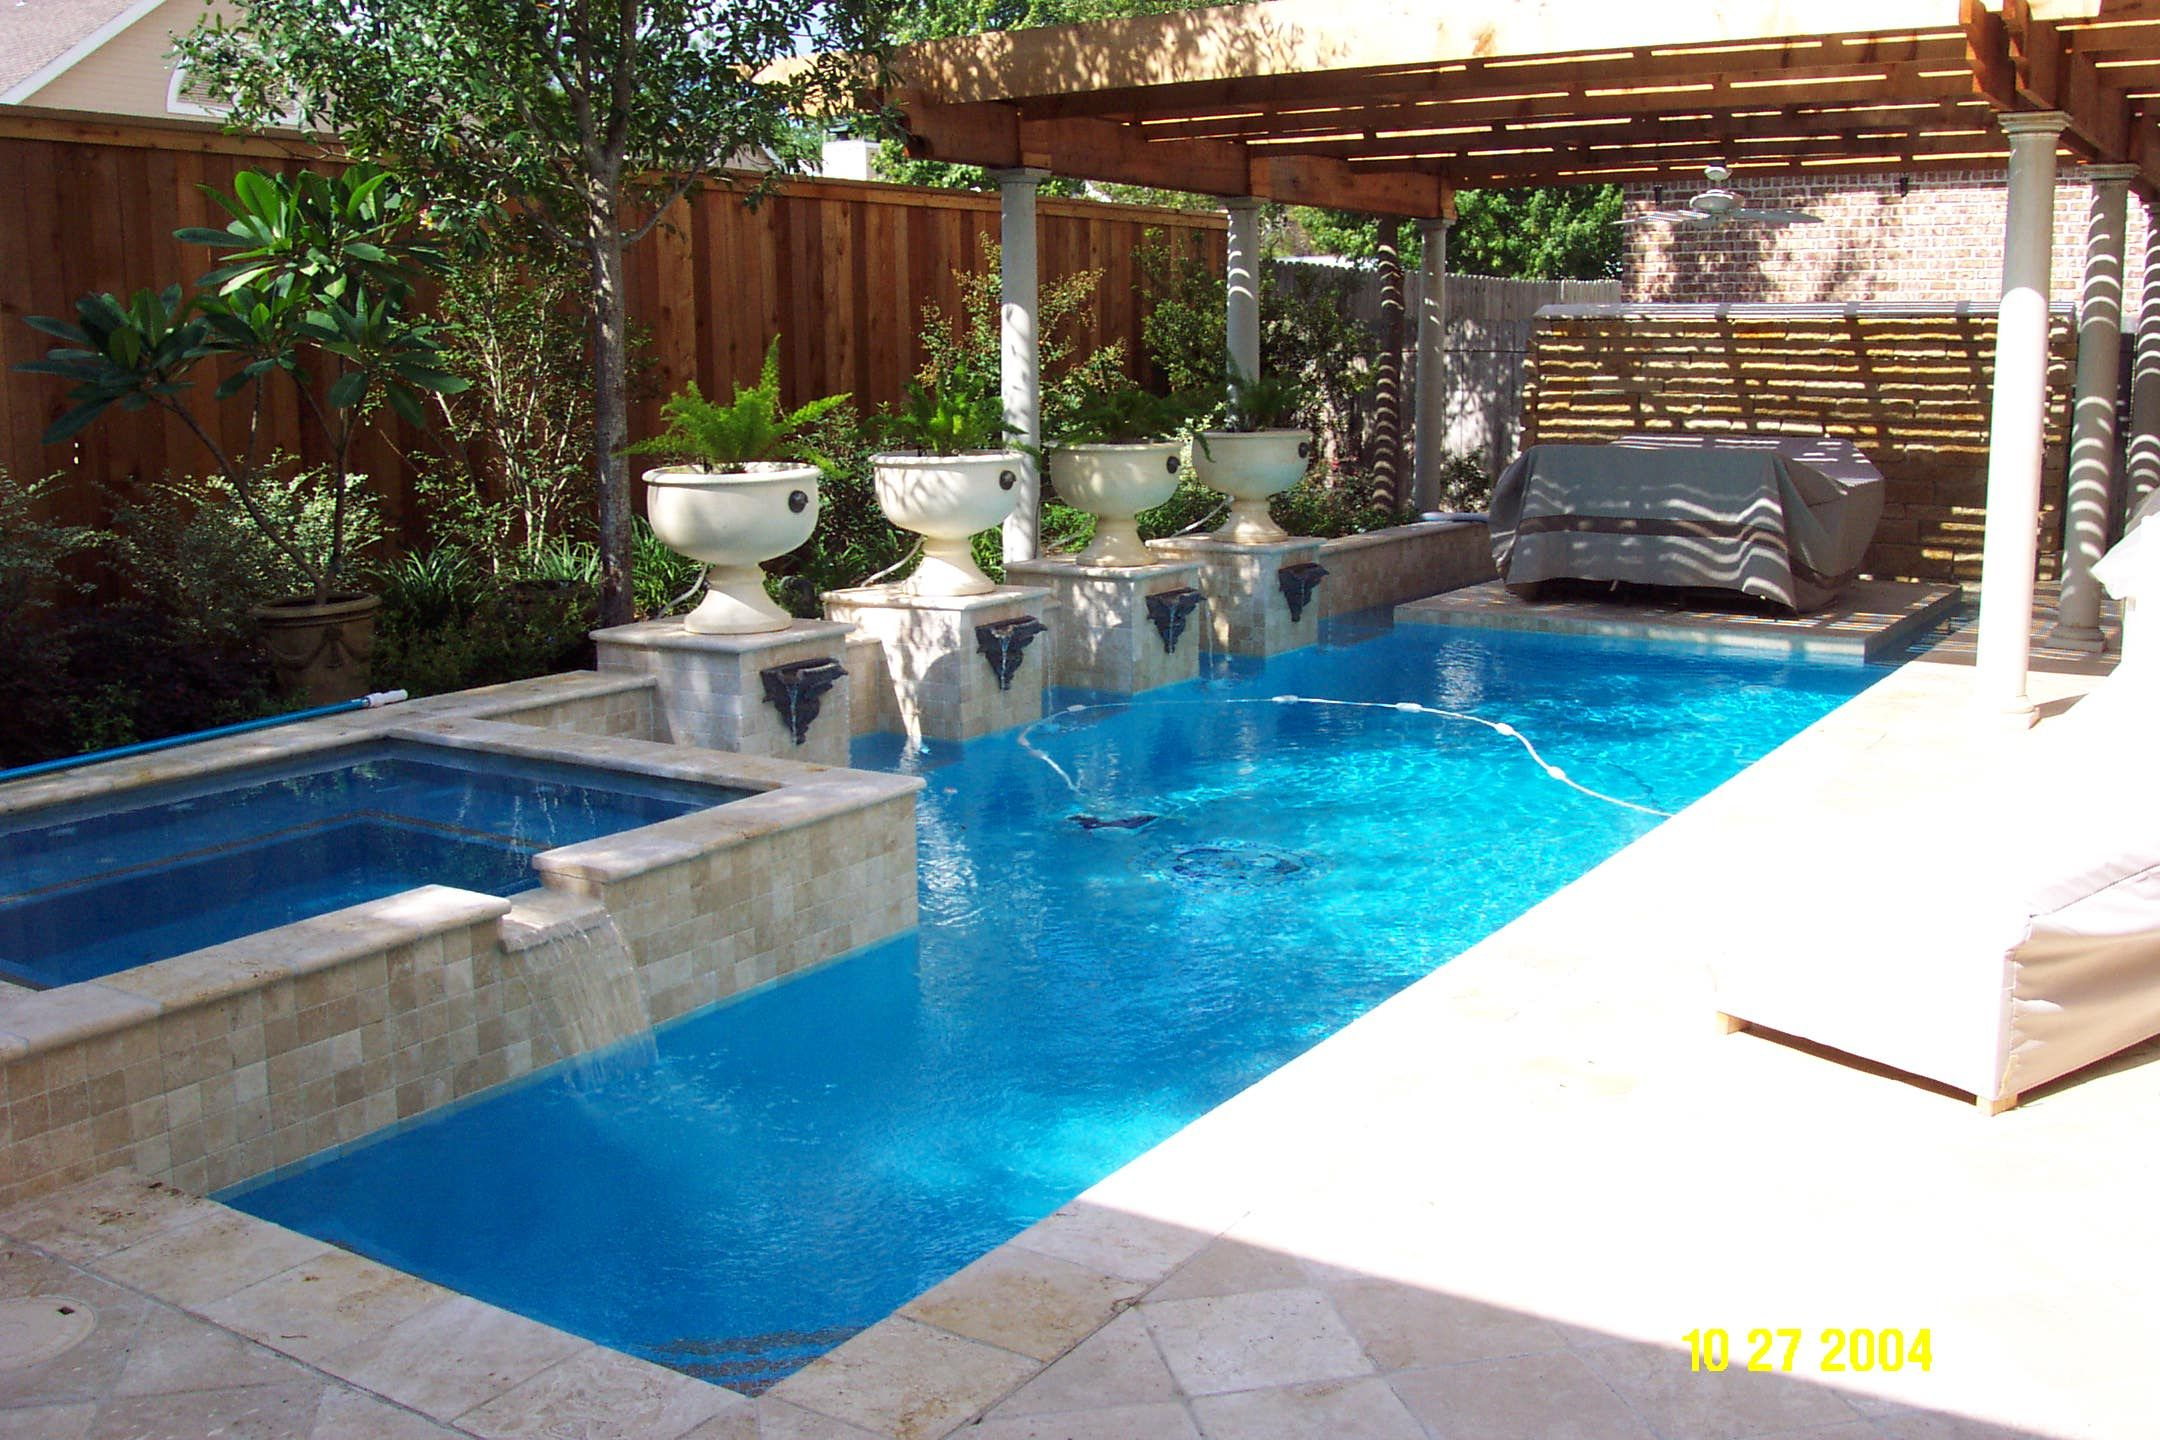 Decorating Create Attractive Swimming Pool With Outstanding Small 2017 And Ideas For Backyards Pic Small Pool Design Pools For Small Yards Small Backyard Pools